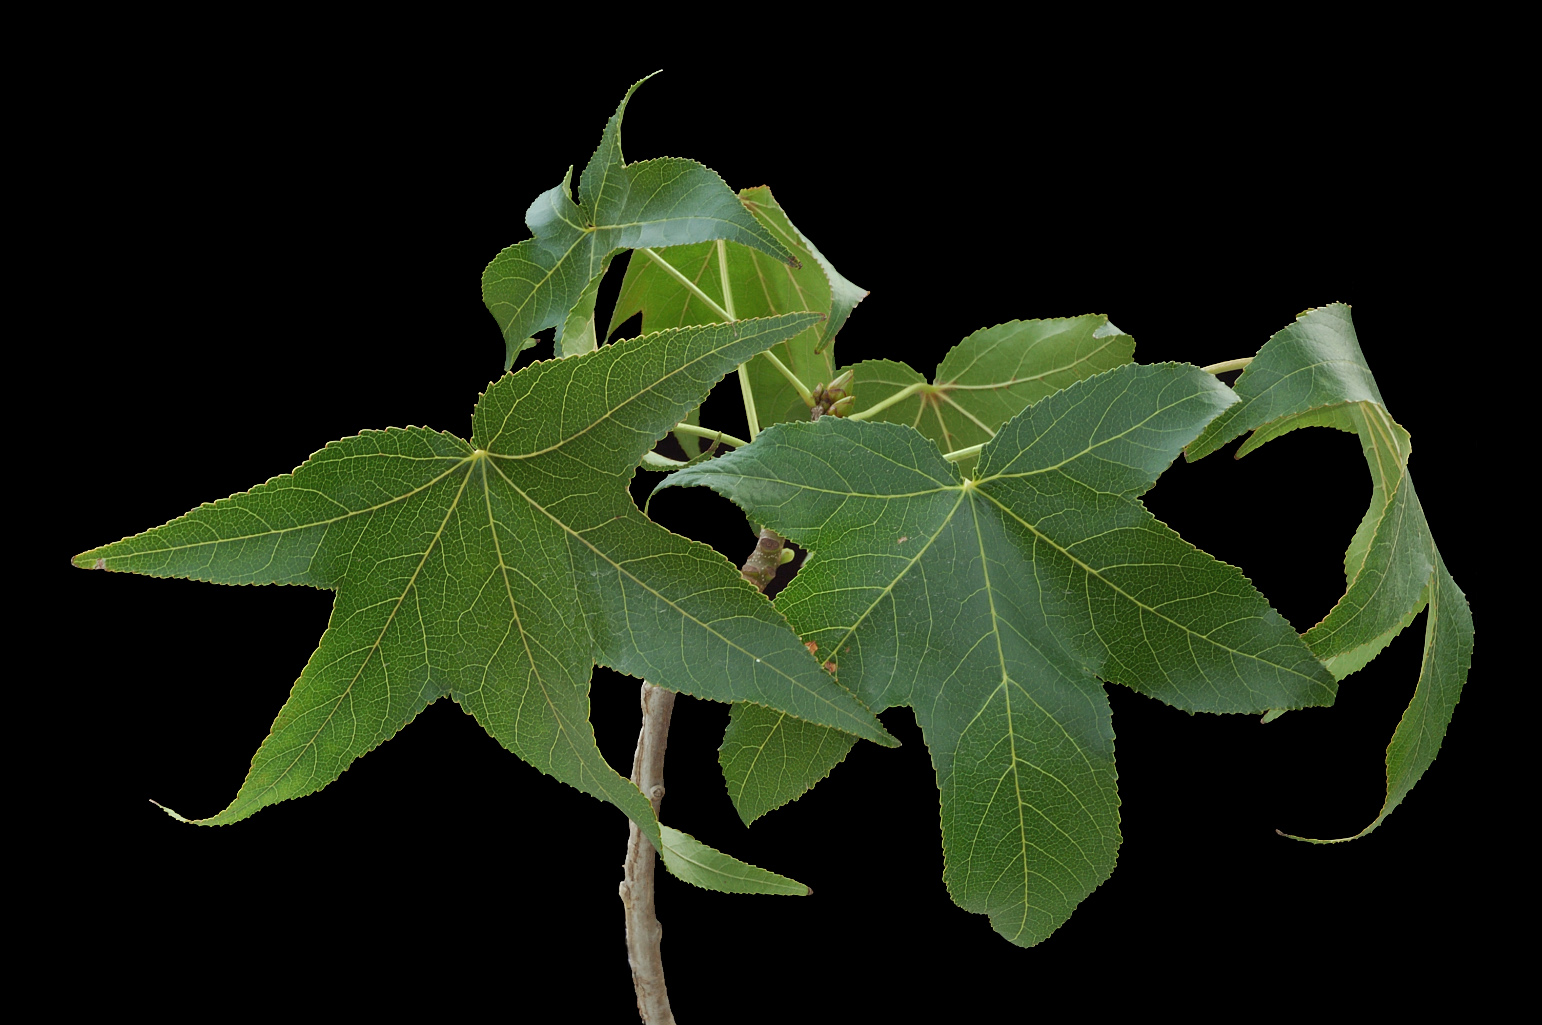 Branch with alternate leaves that tend to be arranged in two opposite rows; leaves are palmately 5-lobed